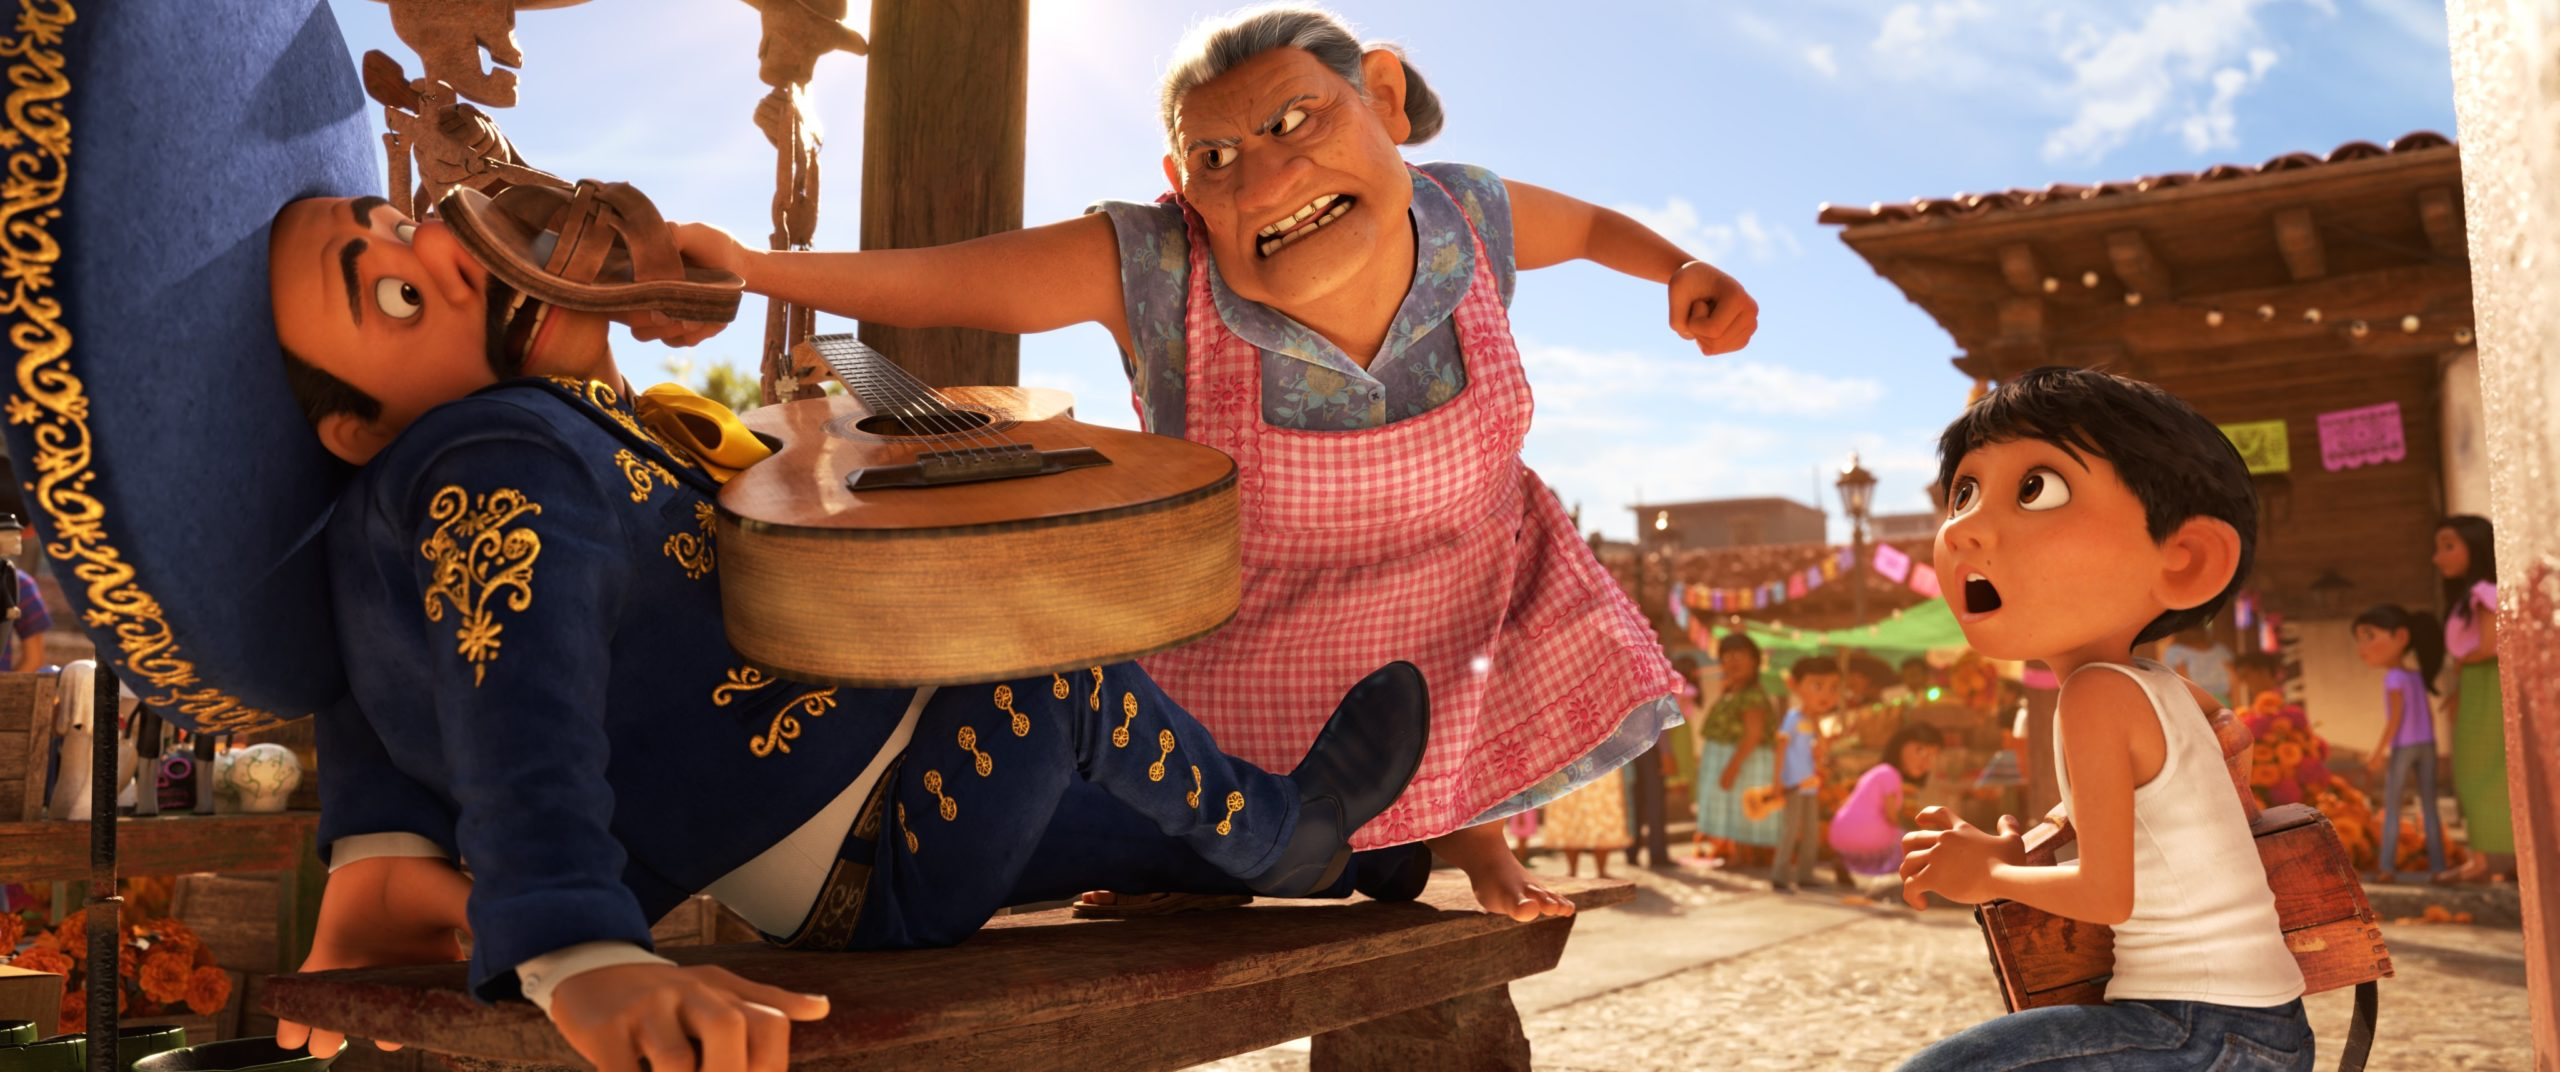 """NO MUSIC – In Disney•Pixar's""""Coco,"""" which opens in U.S. theaters on Nov. 22, 2017, aspiring musician Miguel challenges his family's generations-old ban on music, spending time with a local mariachi. But his grandmother Abuelita promptly puts a stop to it. """"Coco"""" features Lombardo Boyar as the voice of the mariachi, Renée Victor as the voice of Abuelita and Anthony Gonzelez as the voice of Miguel. ©2017 Disney•Pixar. All Rights Reserved."""